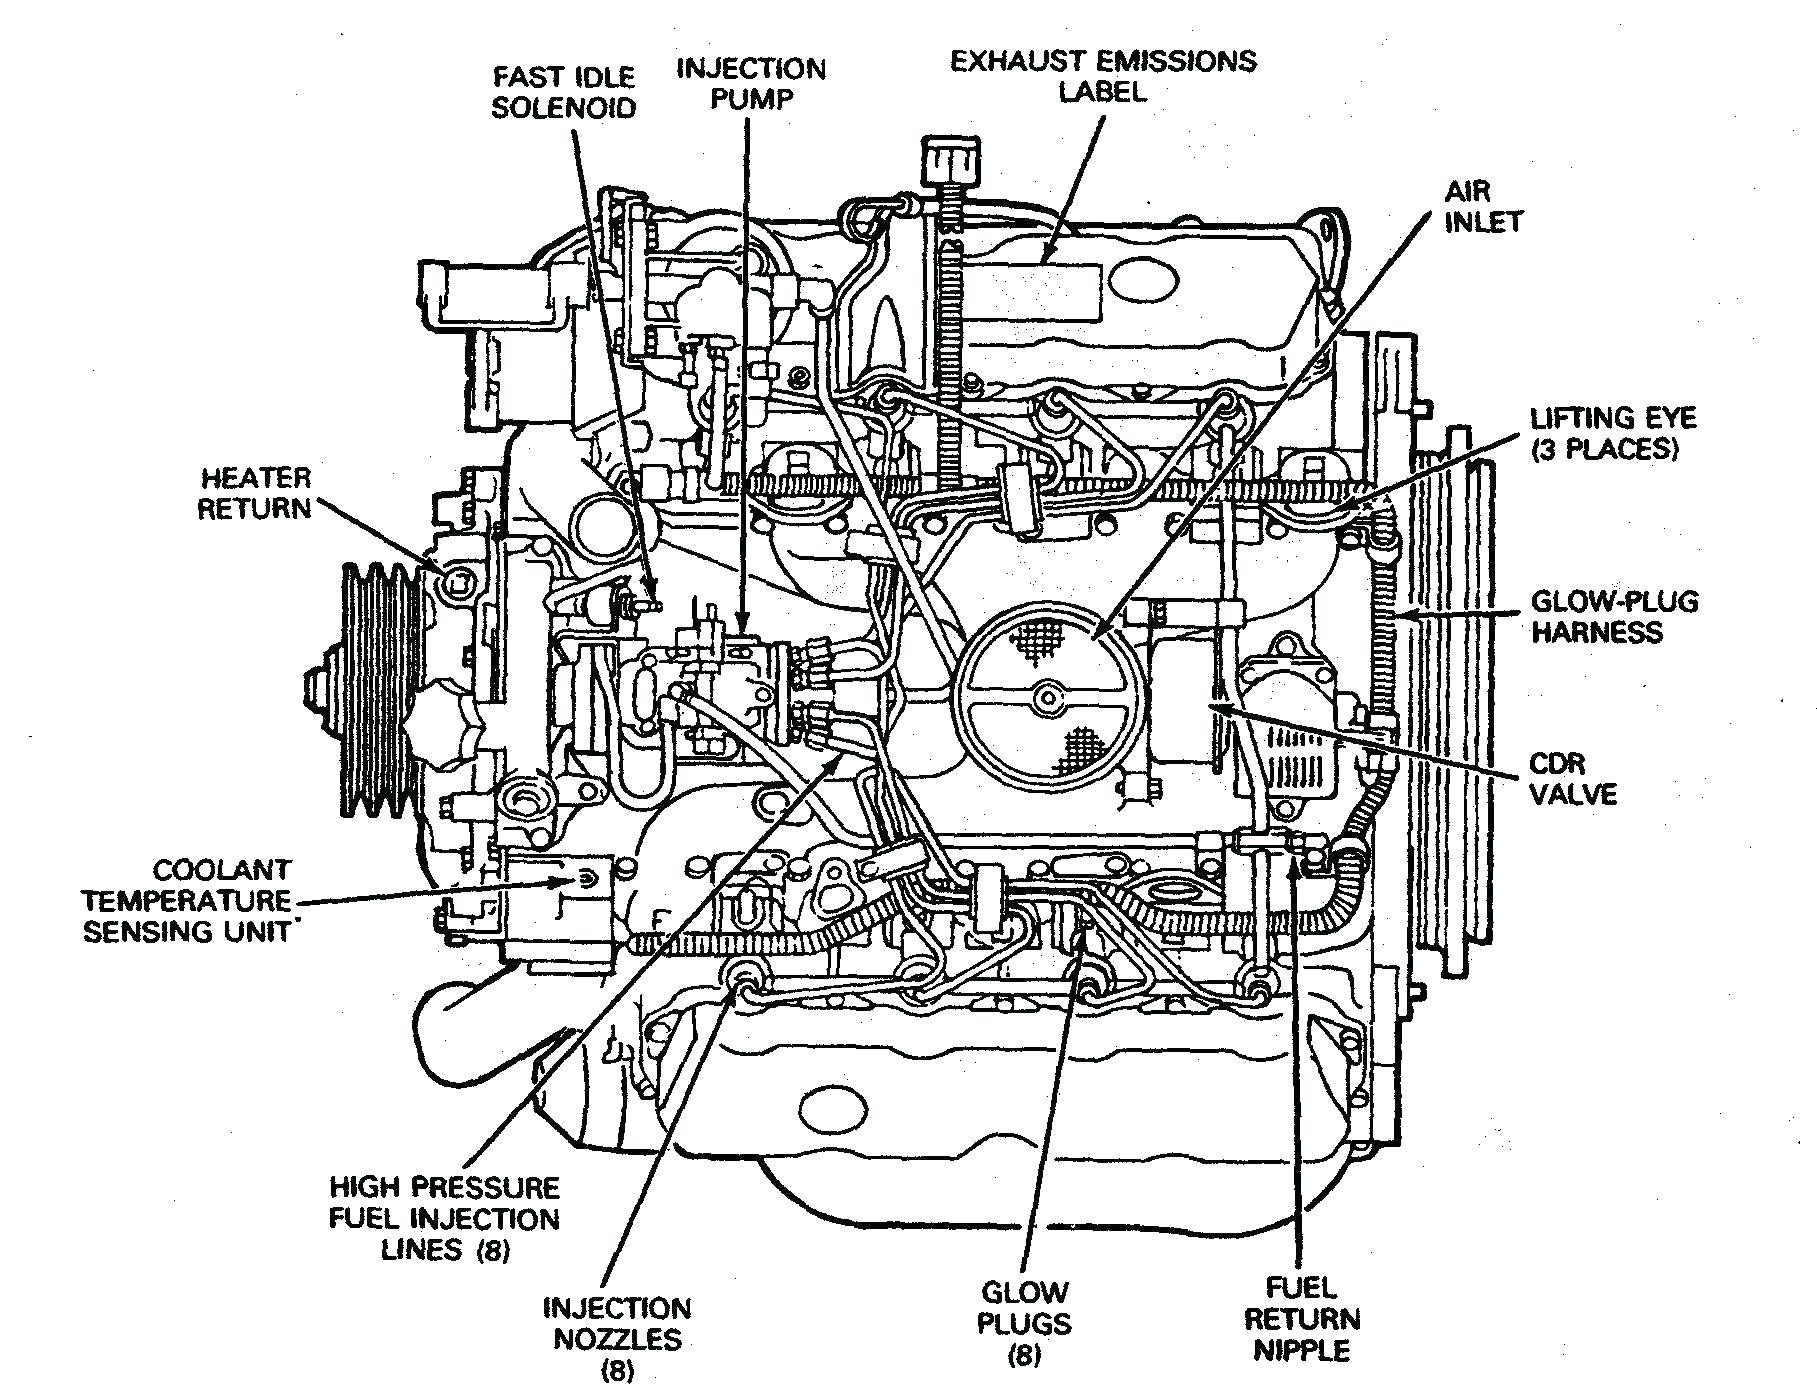 Bmw Engine Parts Diagram Kawasaki Engine Parts Diagram Delighted Inspiration Of Bmw Engine Parts Diagram Pelican Technical Article Bmw X3 Engine Cooling Fan Replacement